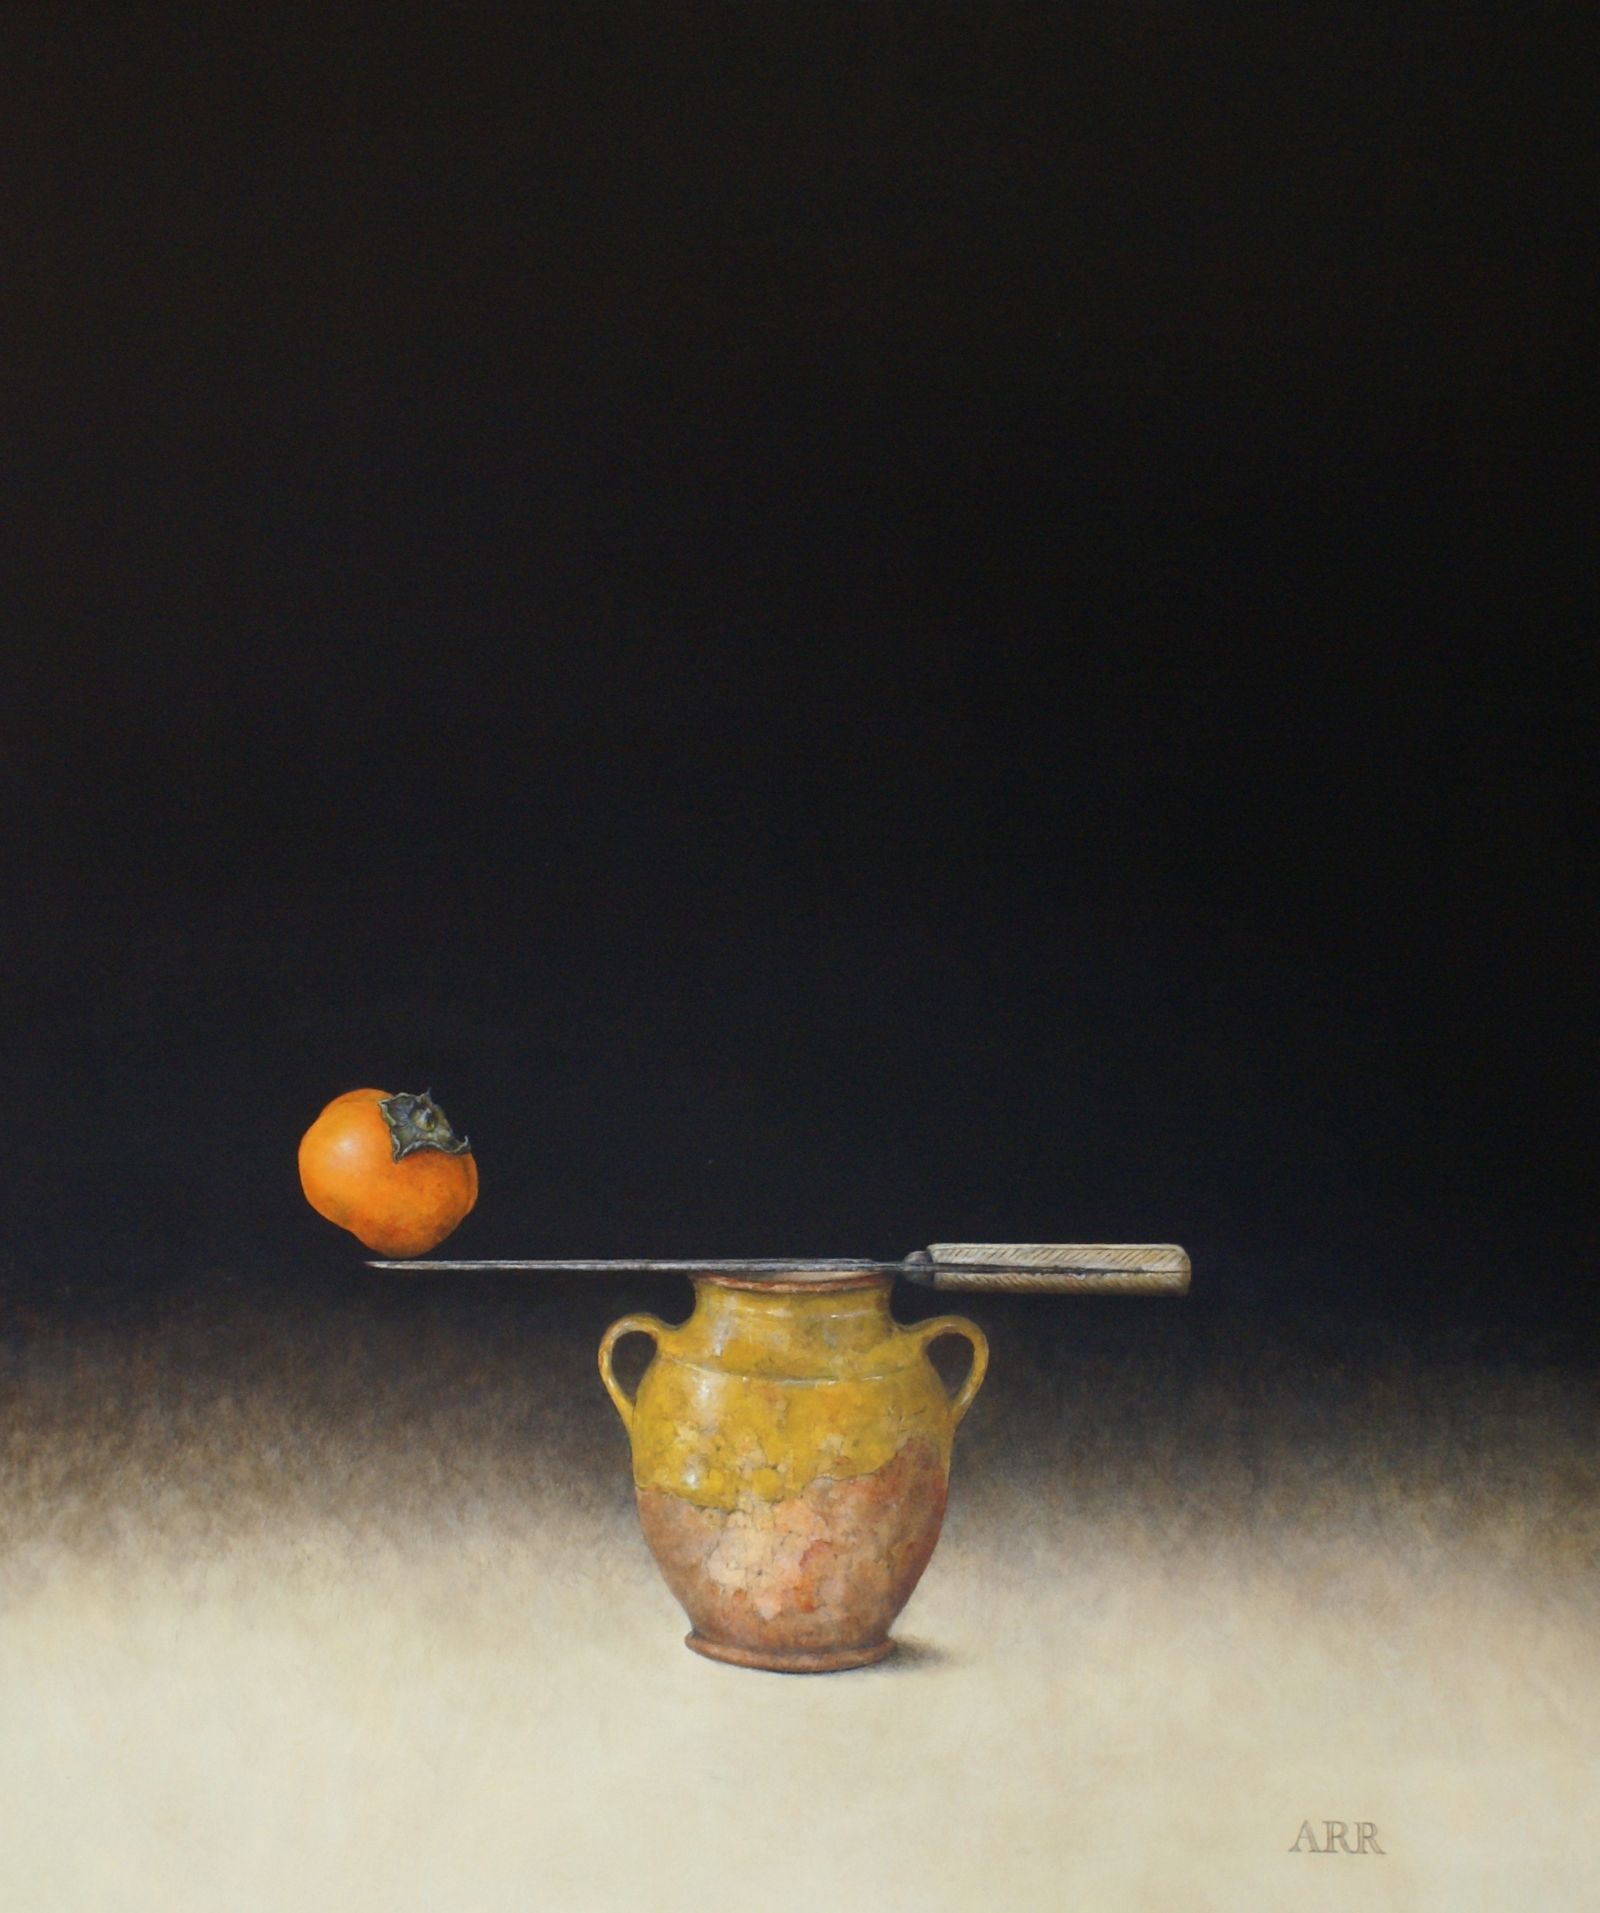 French Jar with Knife and Persimmon by Alison Rankin